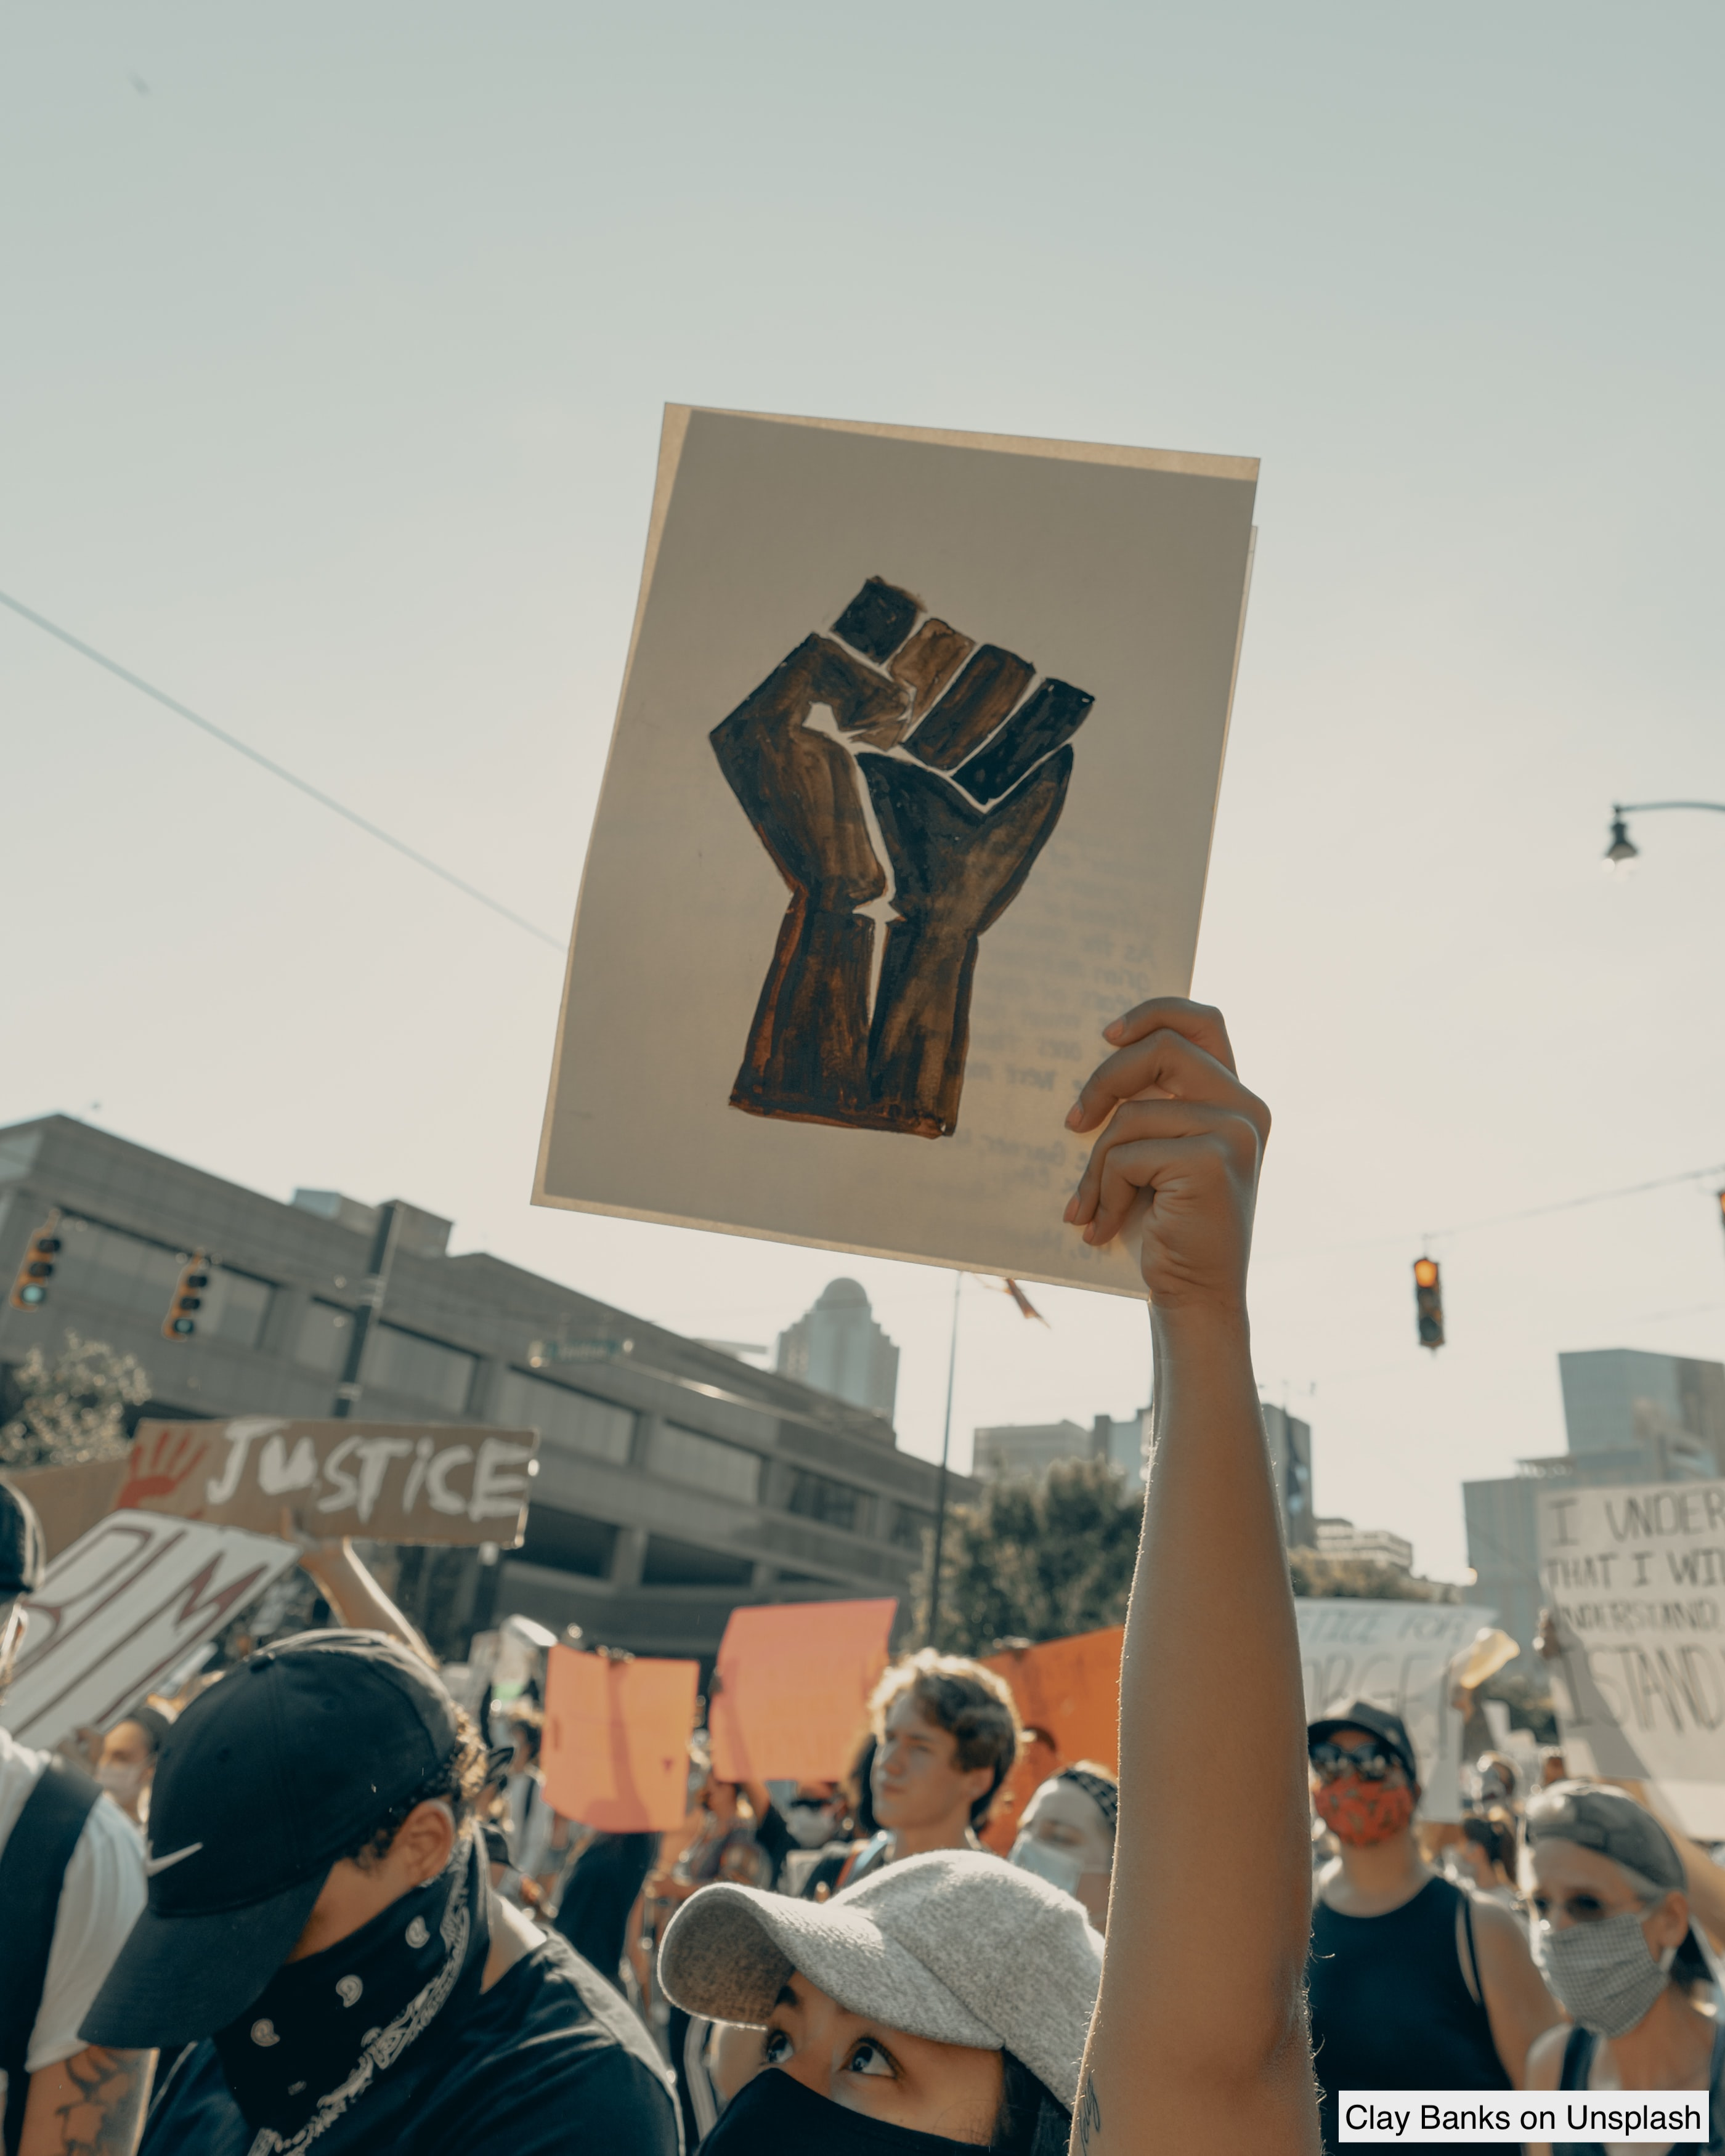 protestor holding sign with a drawing of a black fist